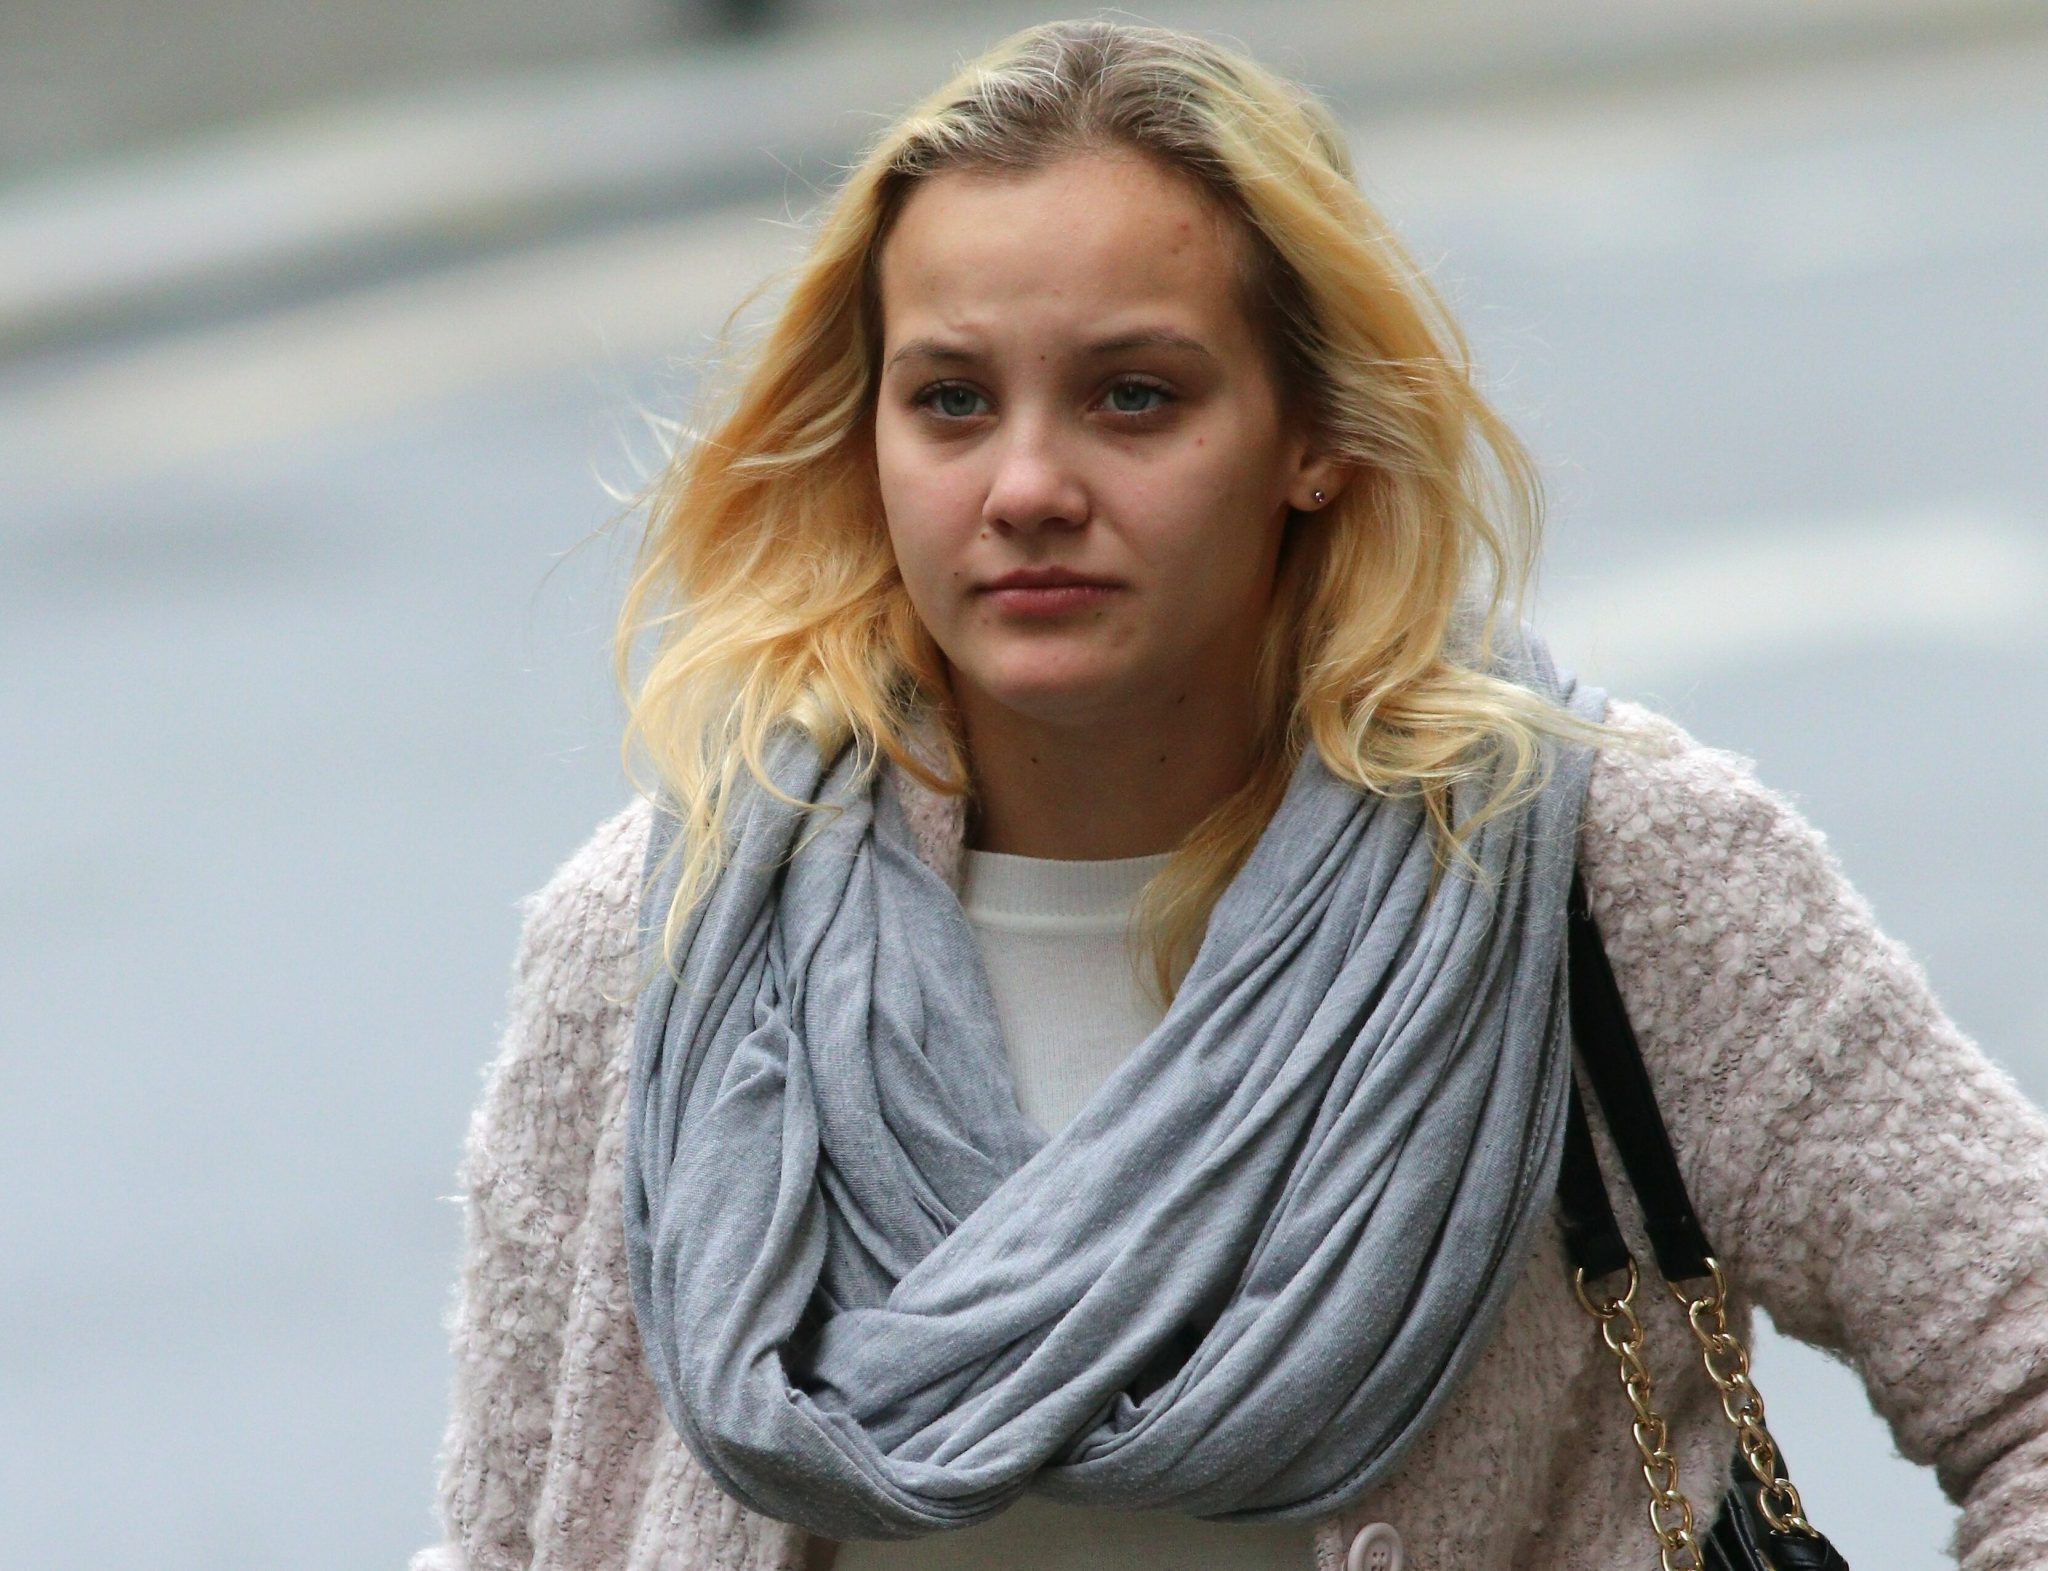 Teenager who helped cover up murder walks free